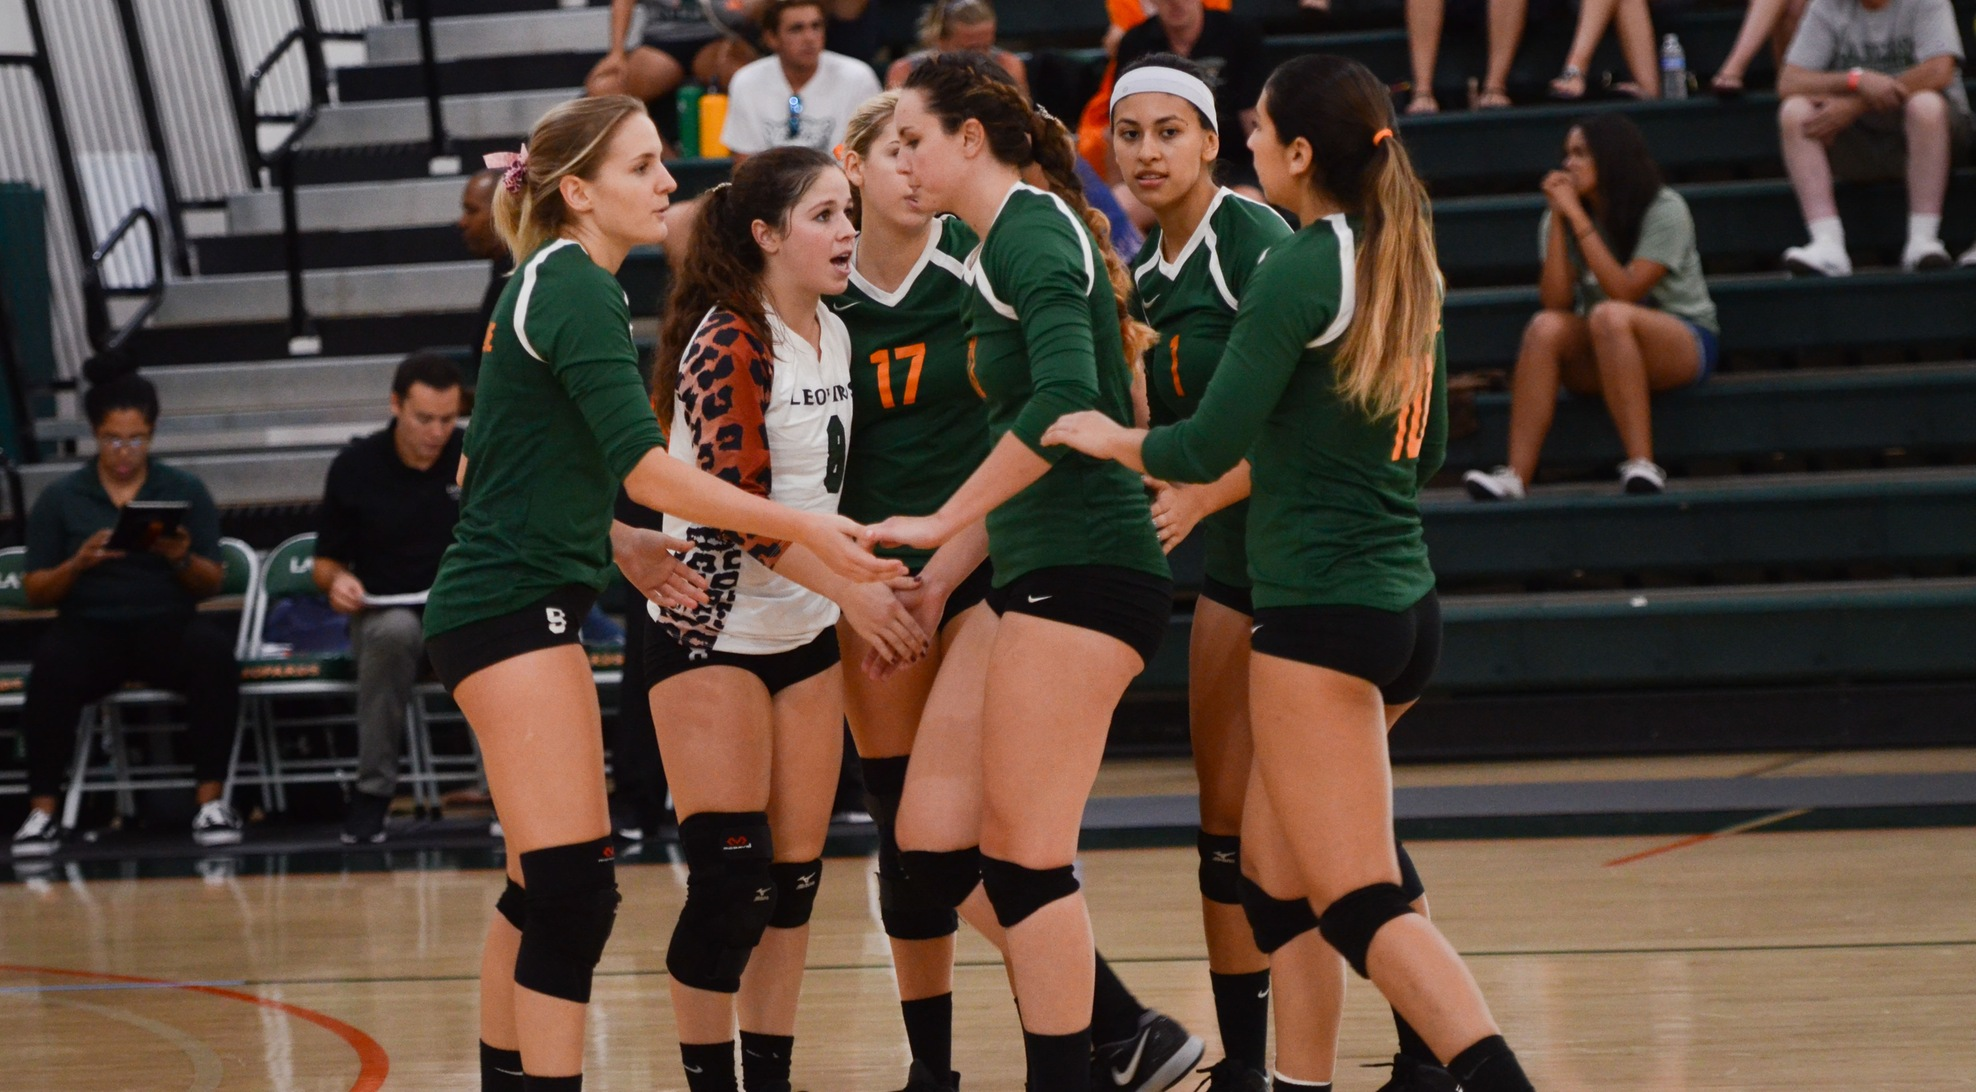 No. 15 Volleyball opens MIT Invite with win over Babson